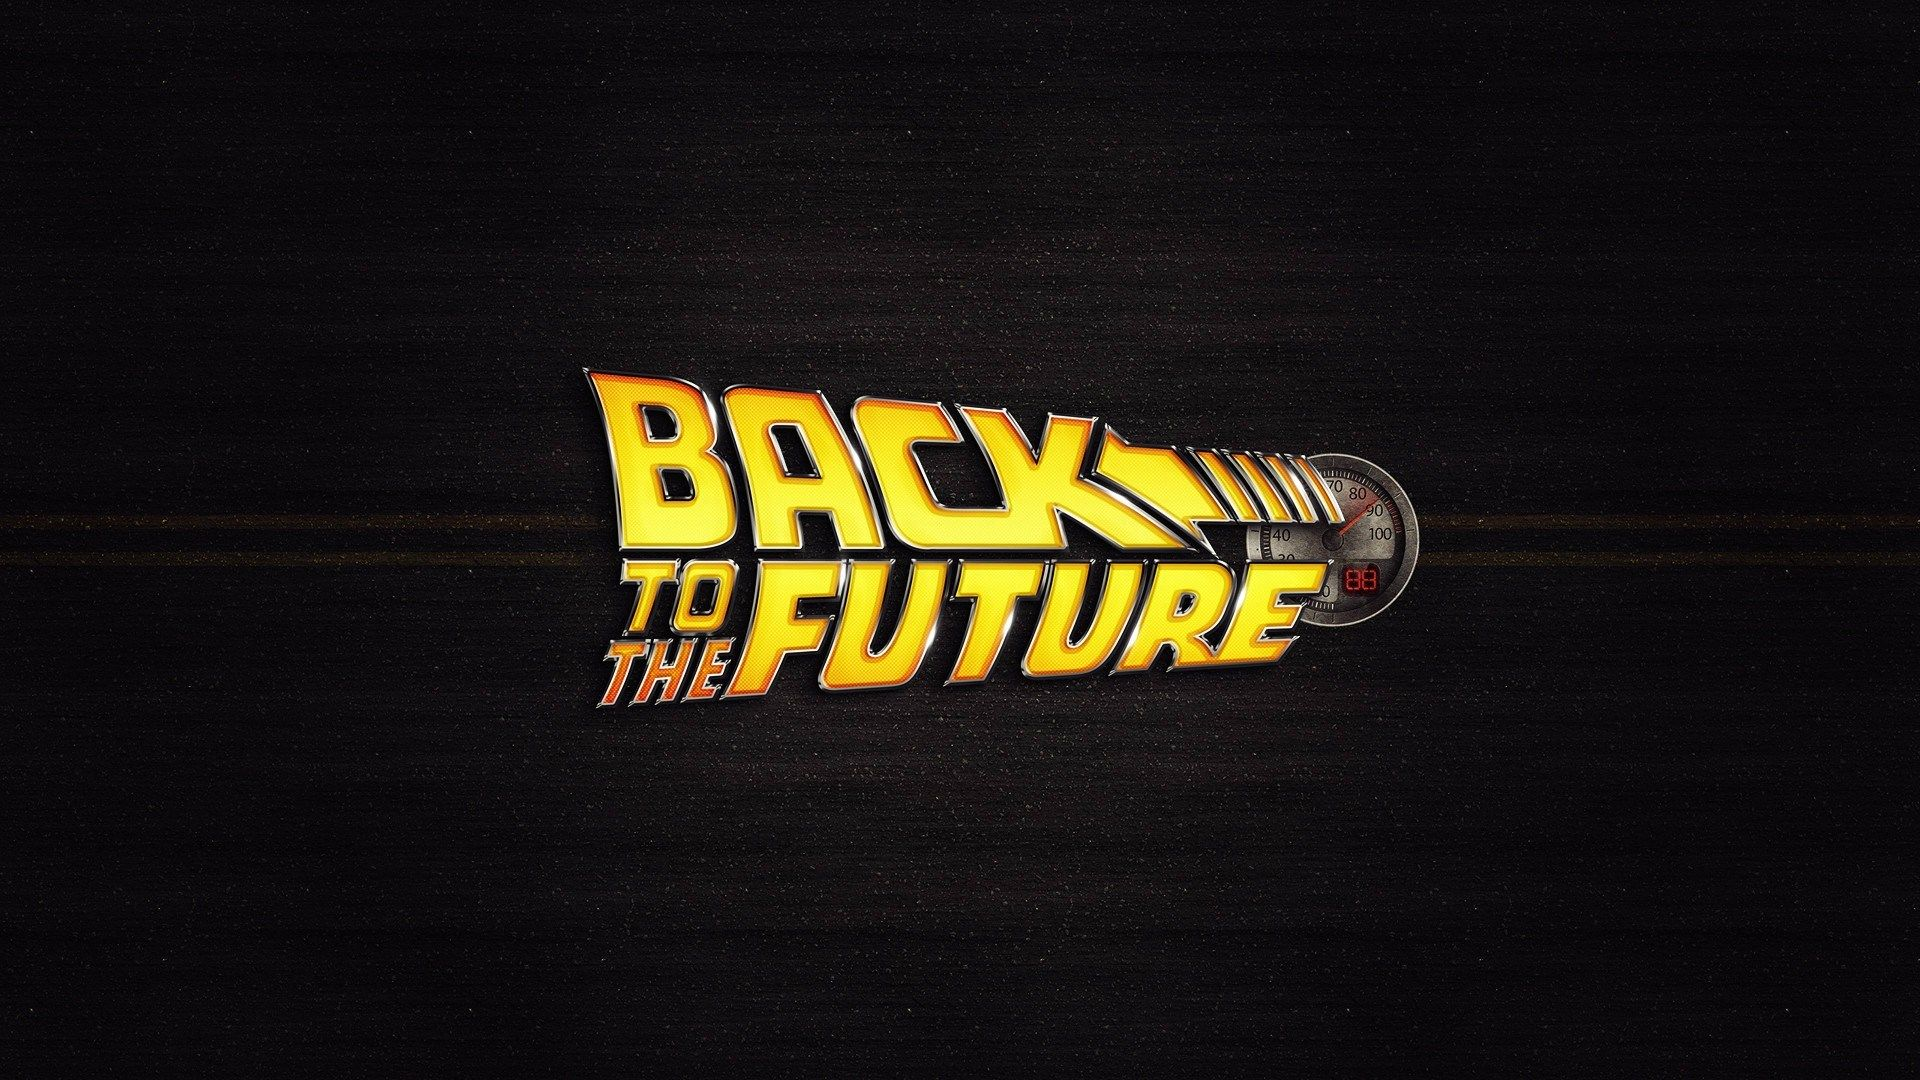 Quality cool back to the future wallpaper 460 kb acton mason quality cool back to the future wallpaper 460 kb acton mason voltagebd Images